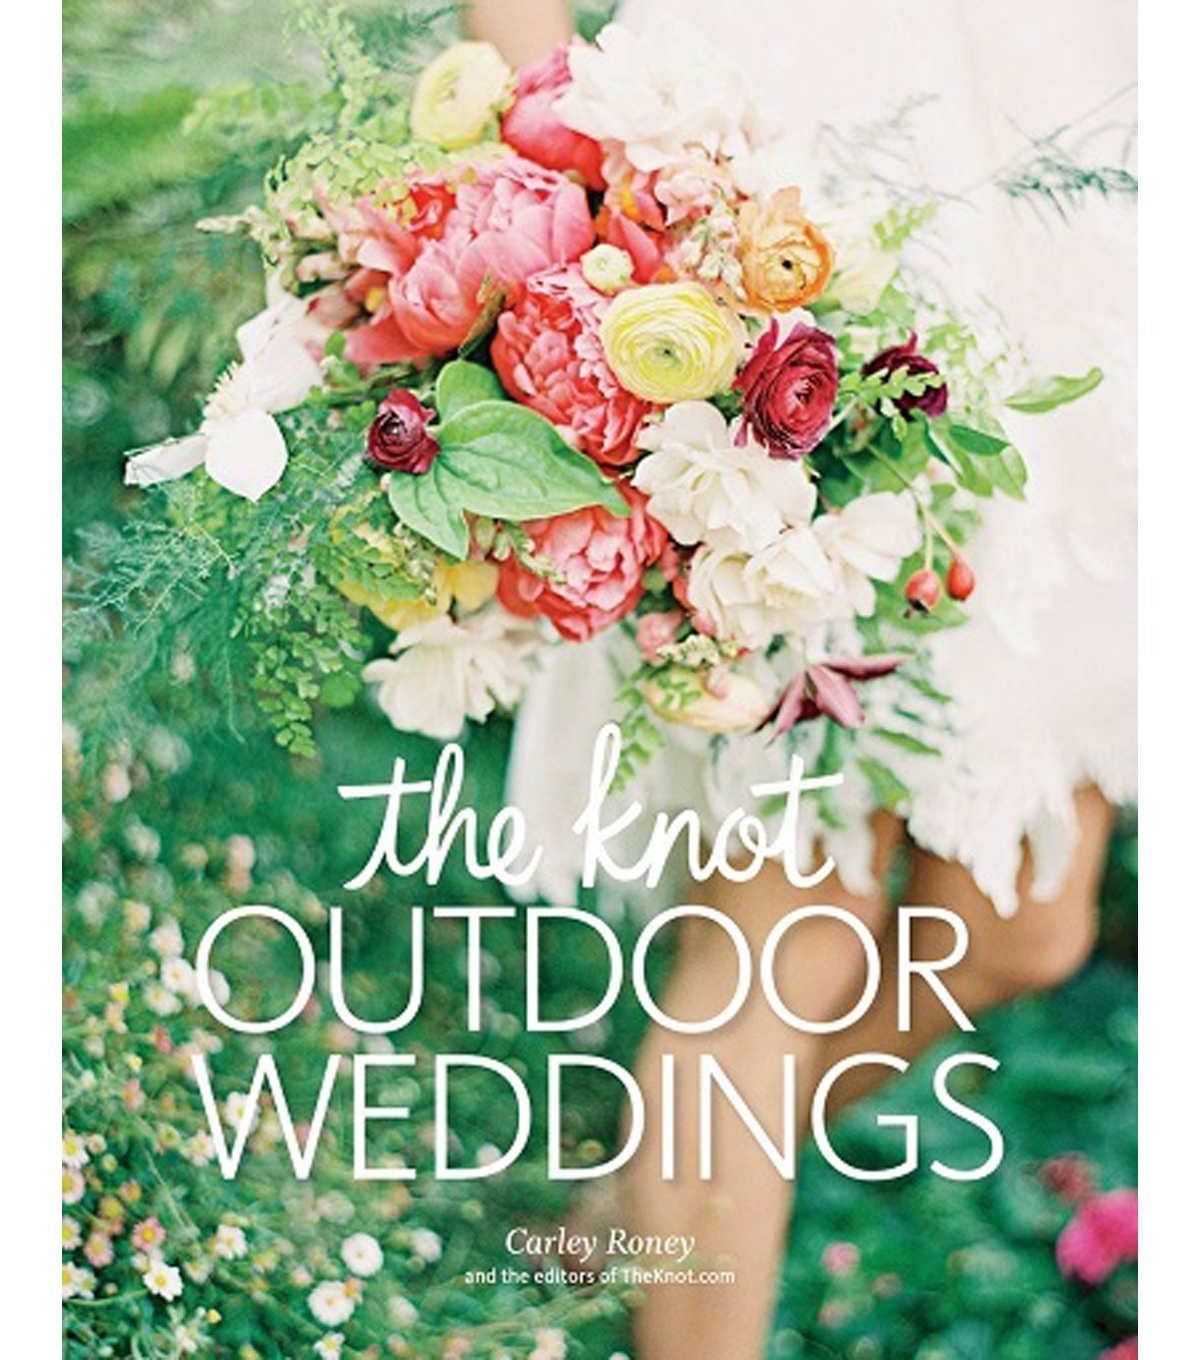 The Knot Outdoor Weddings Book